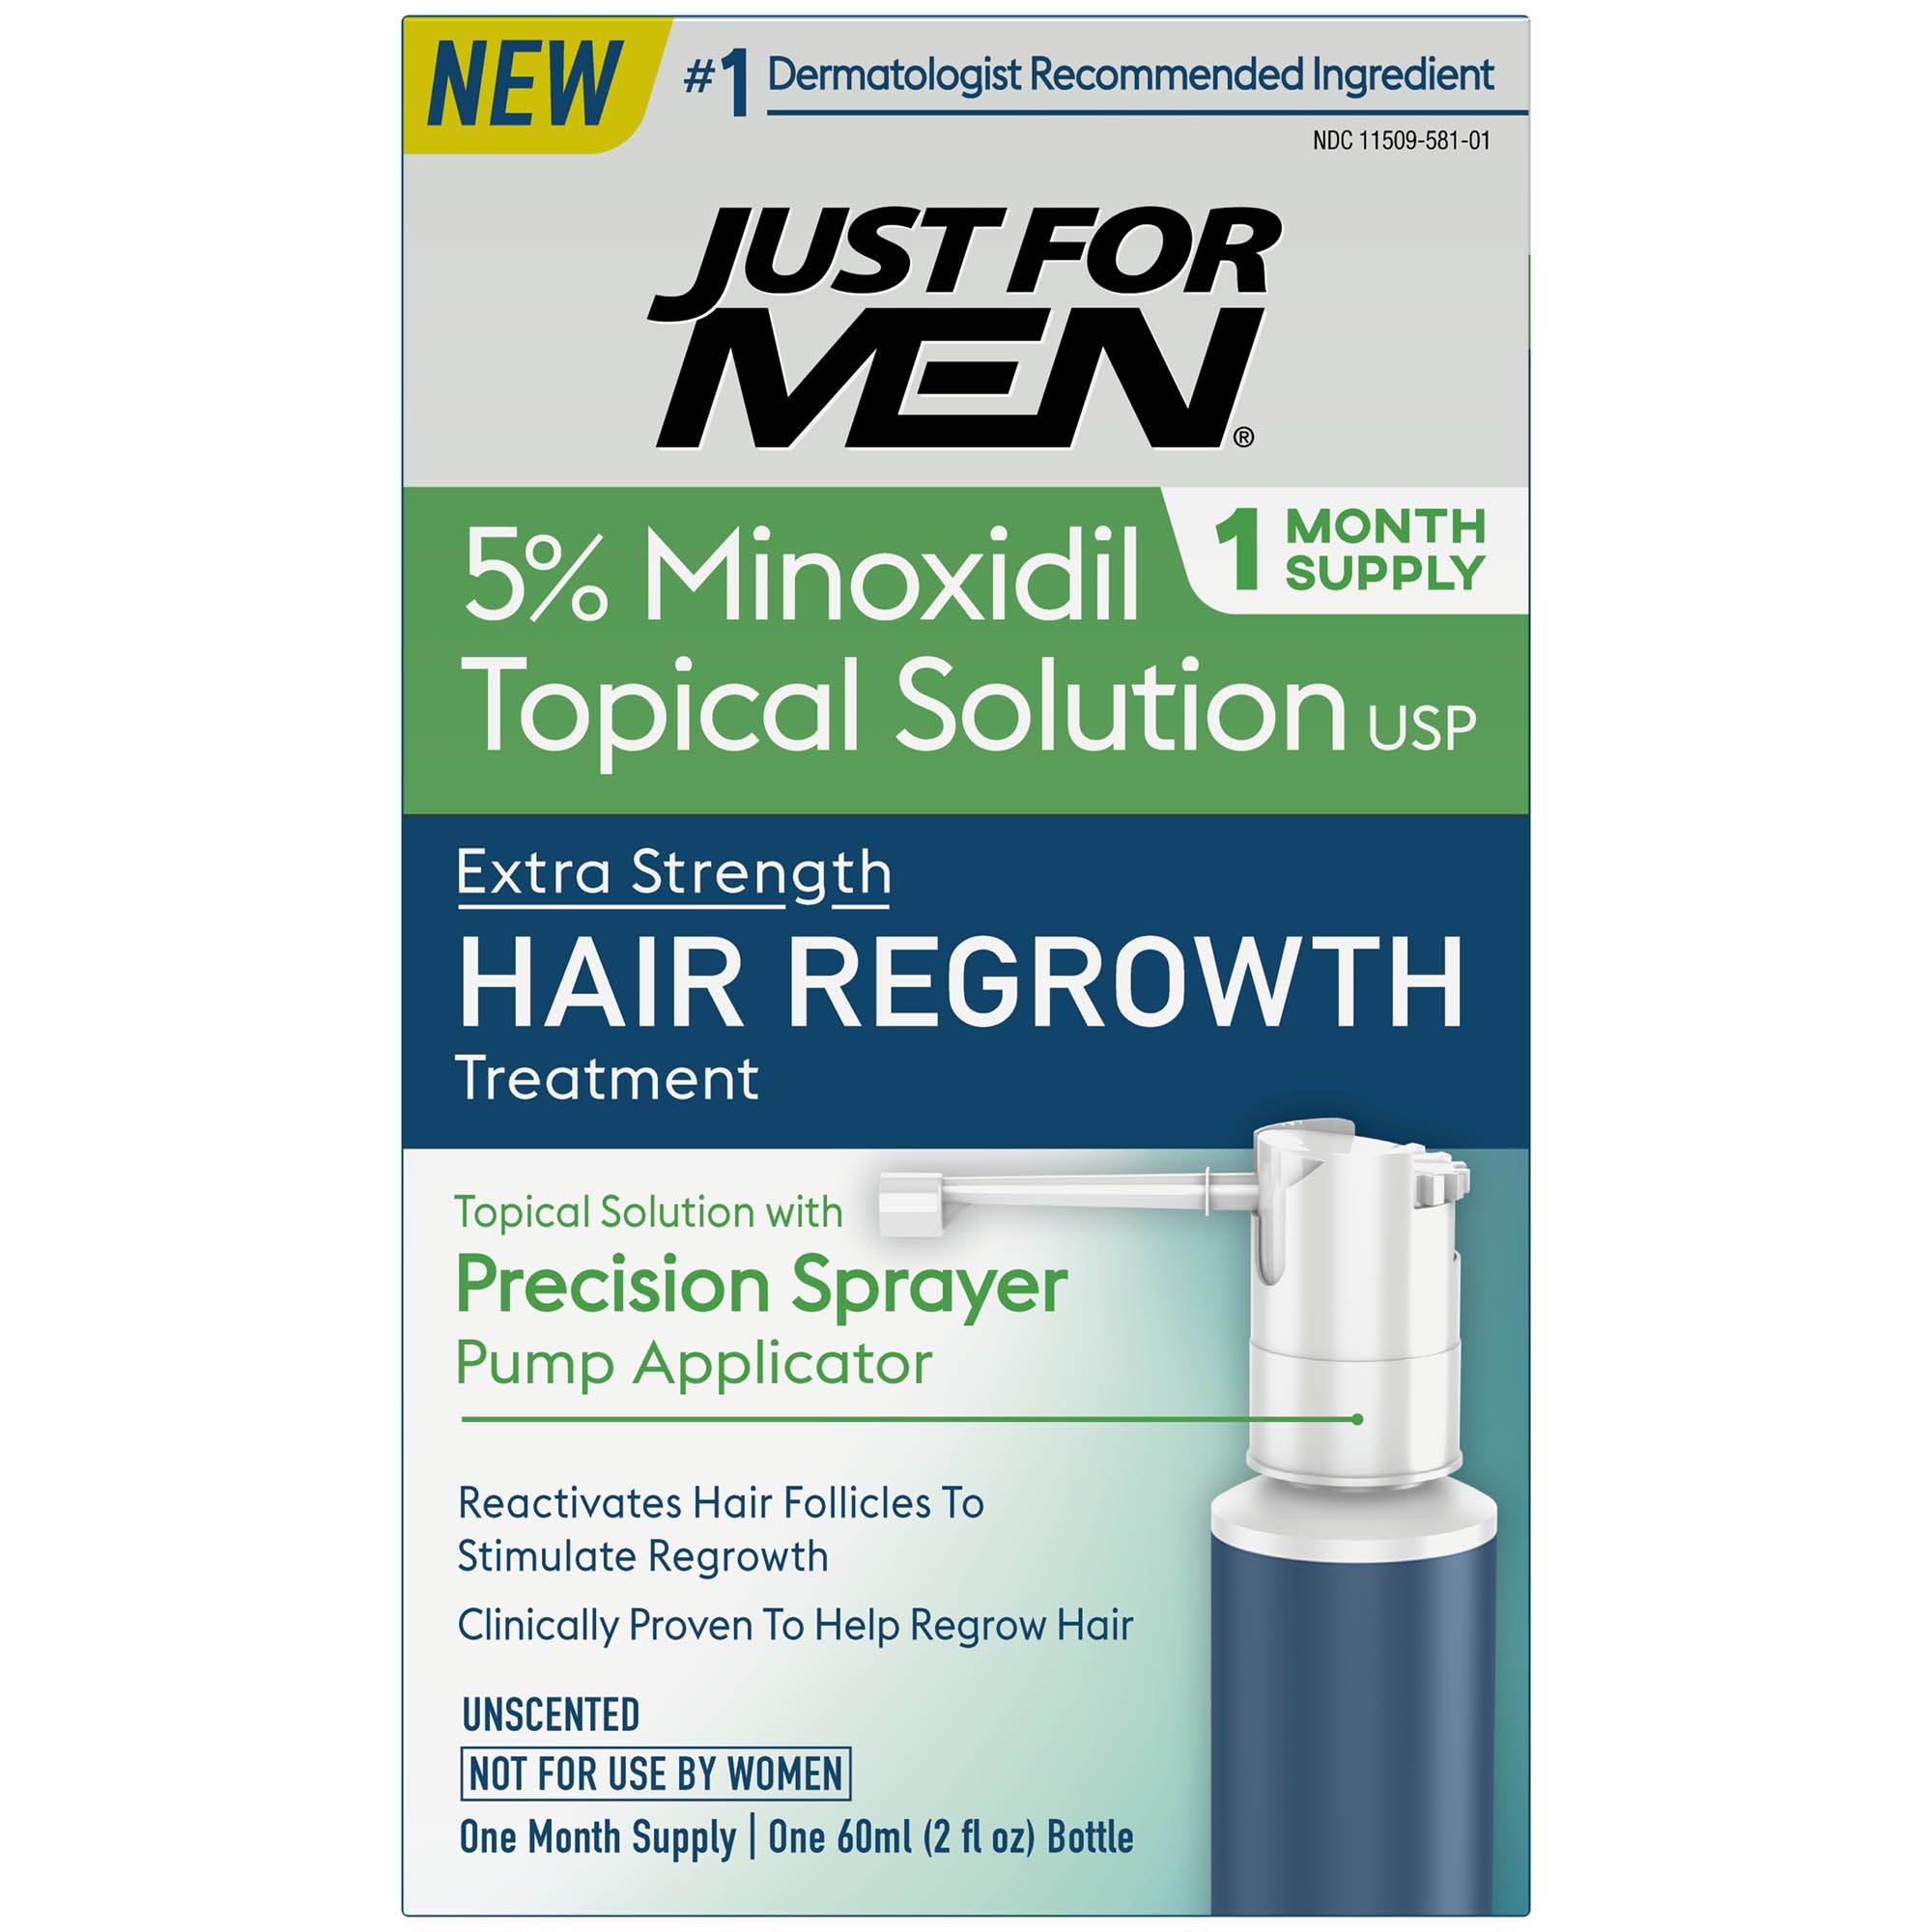 Just For Men Extra Strength Hair Regrowth Treatment, 5% Minoxidil Topical Solution USP, 1 Month Supply, 2 Fluid Ounce